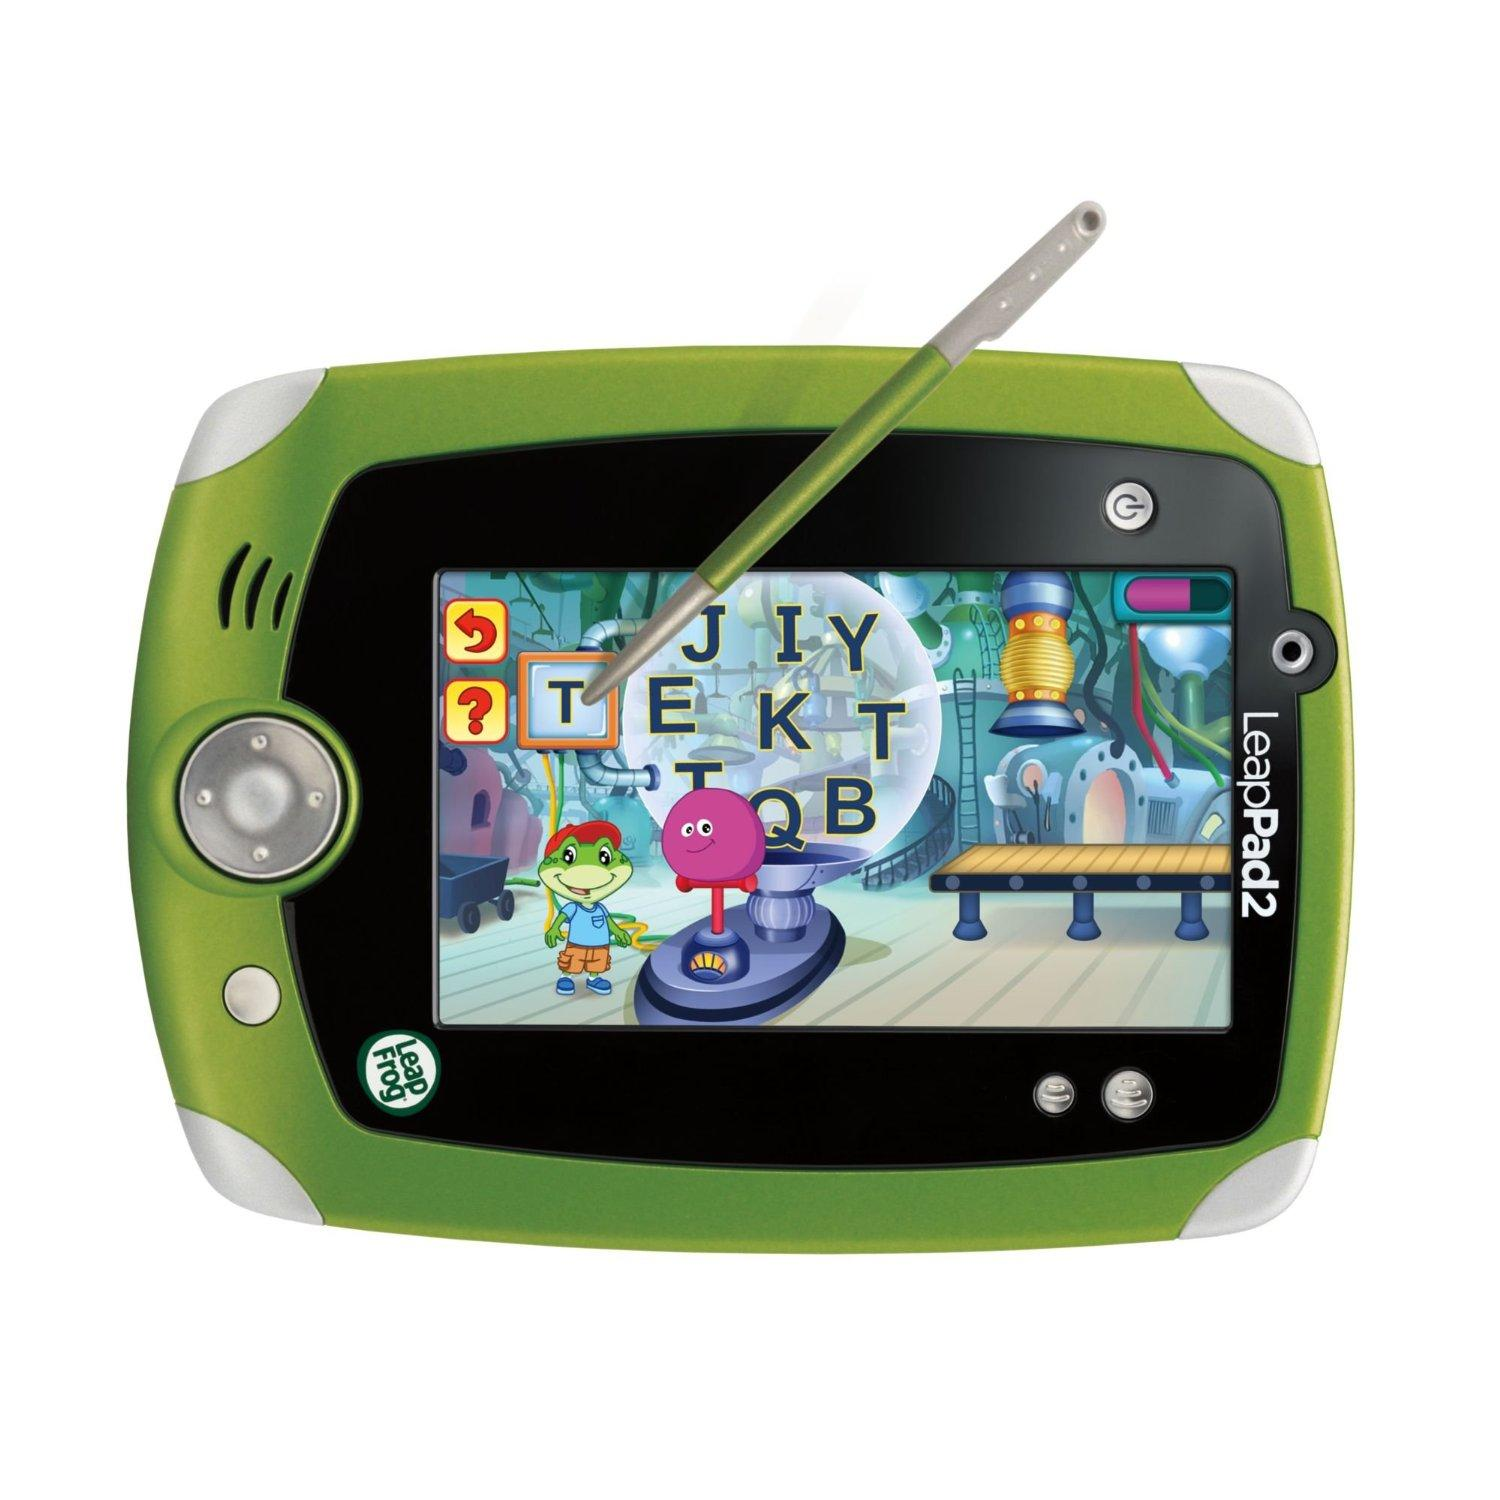 New LeapFrog LeapPad 2 and Leapster GS give Educational Gaming a Power Boost